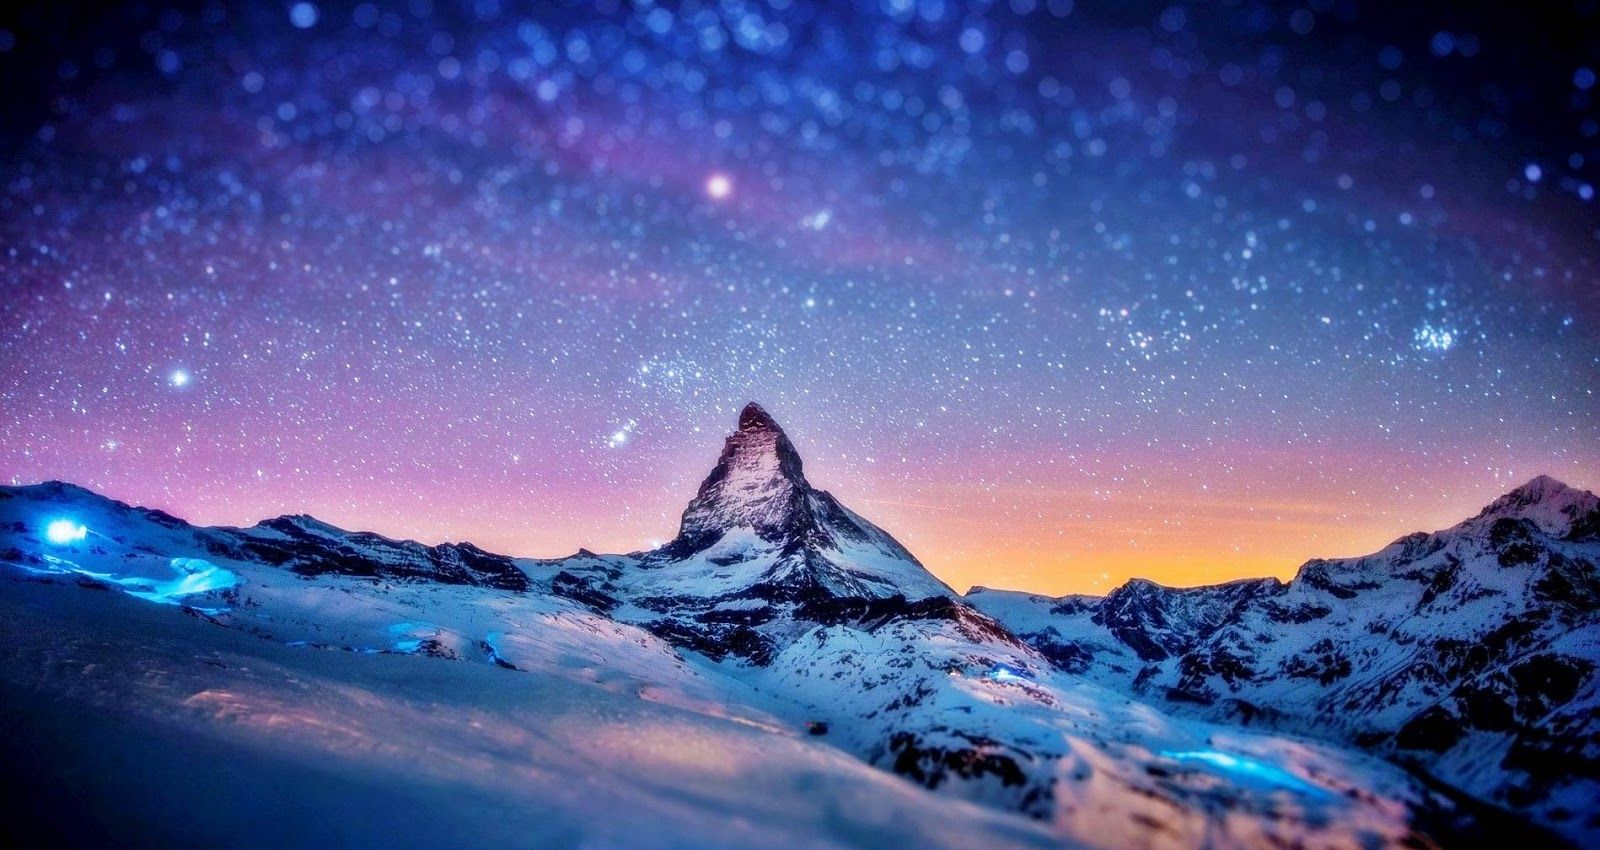 Snow mountain wallpaper hd snow mountain in night - Hd snow mountain wallpaper ...